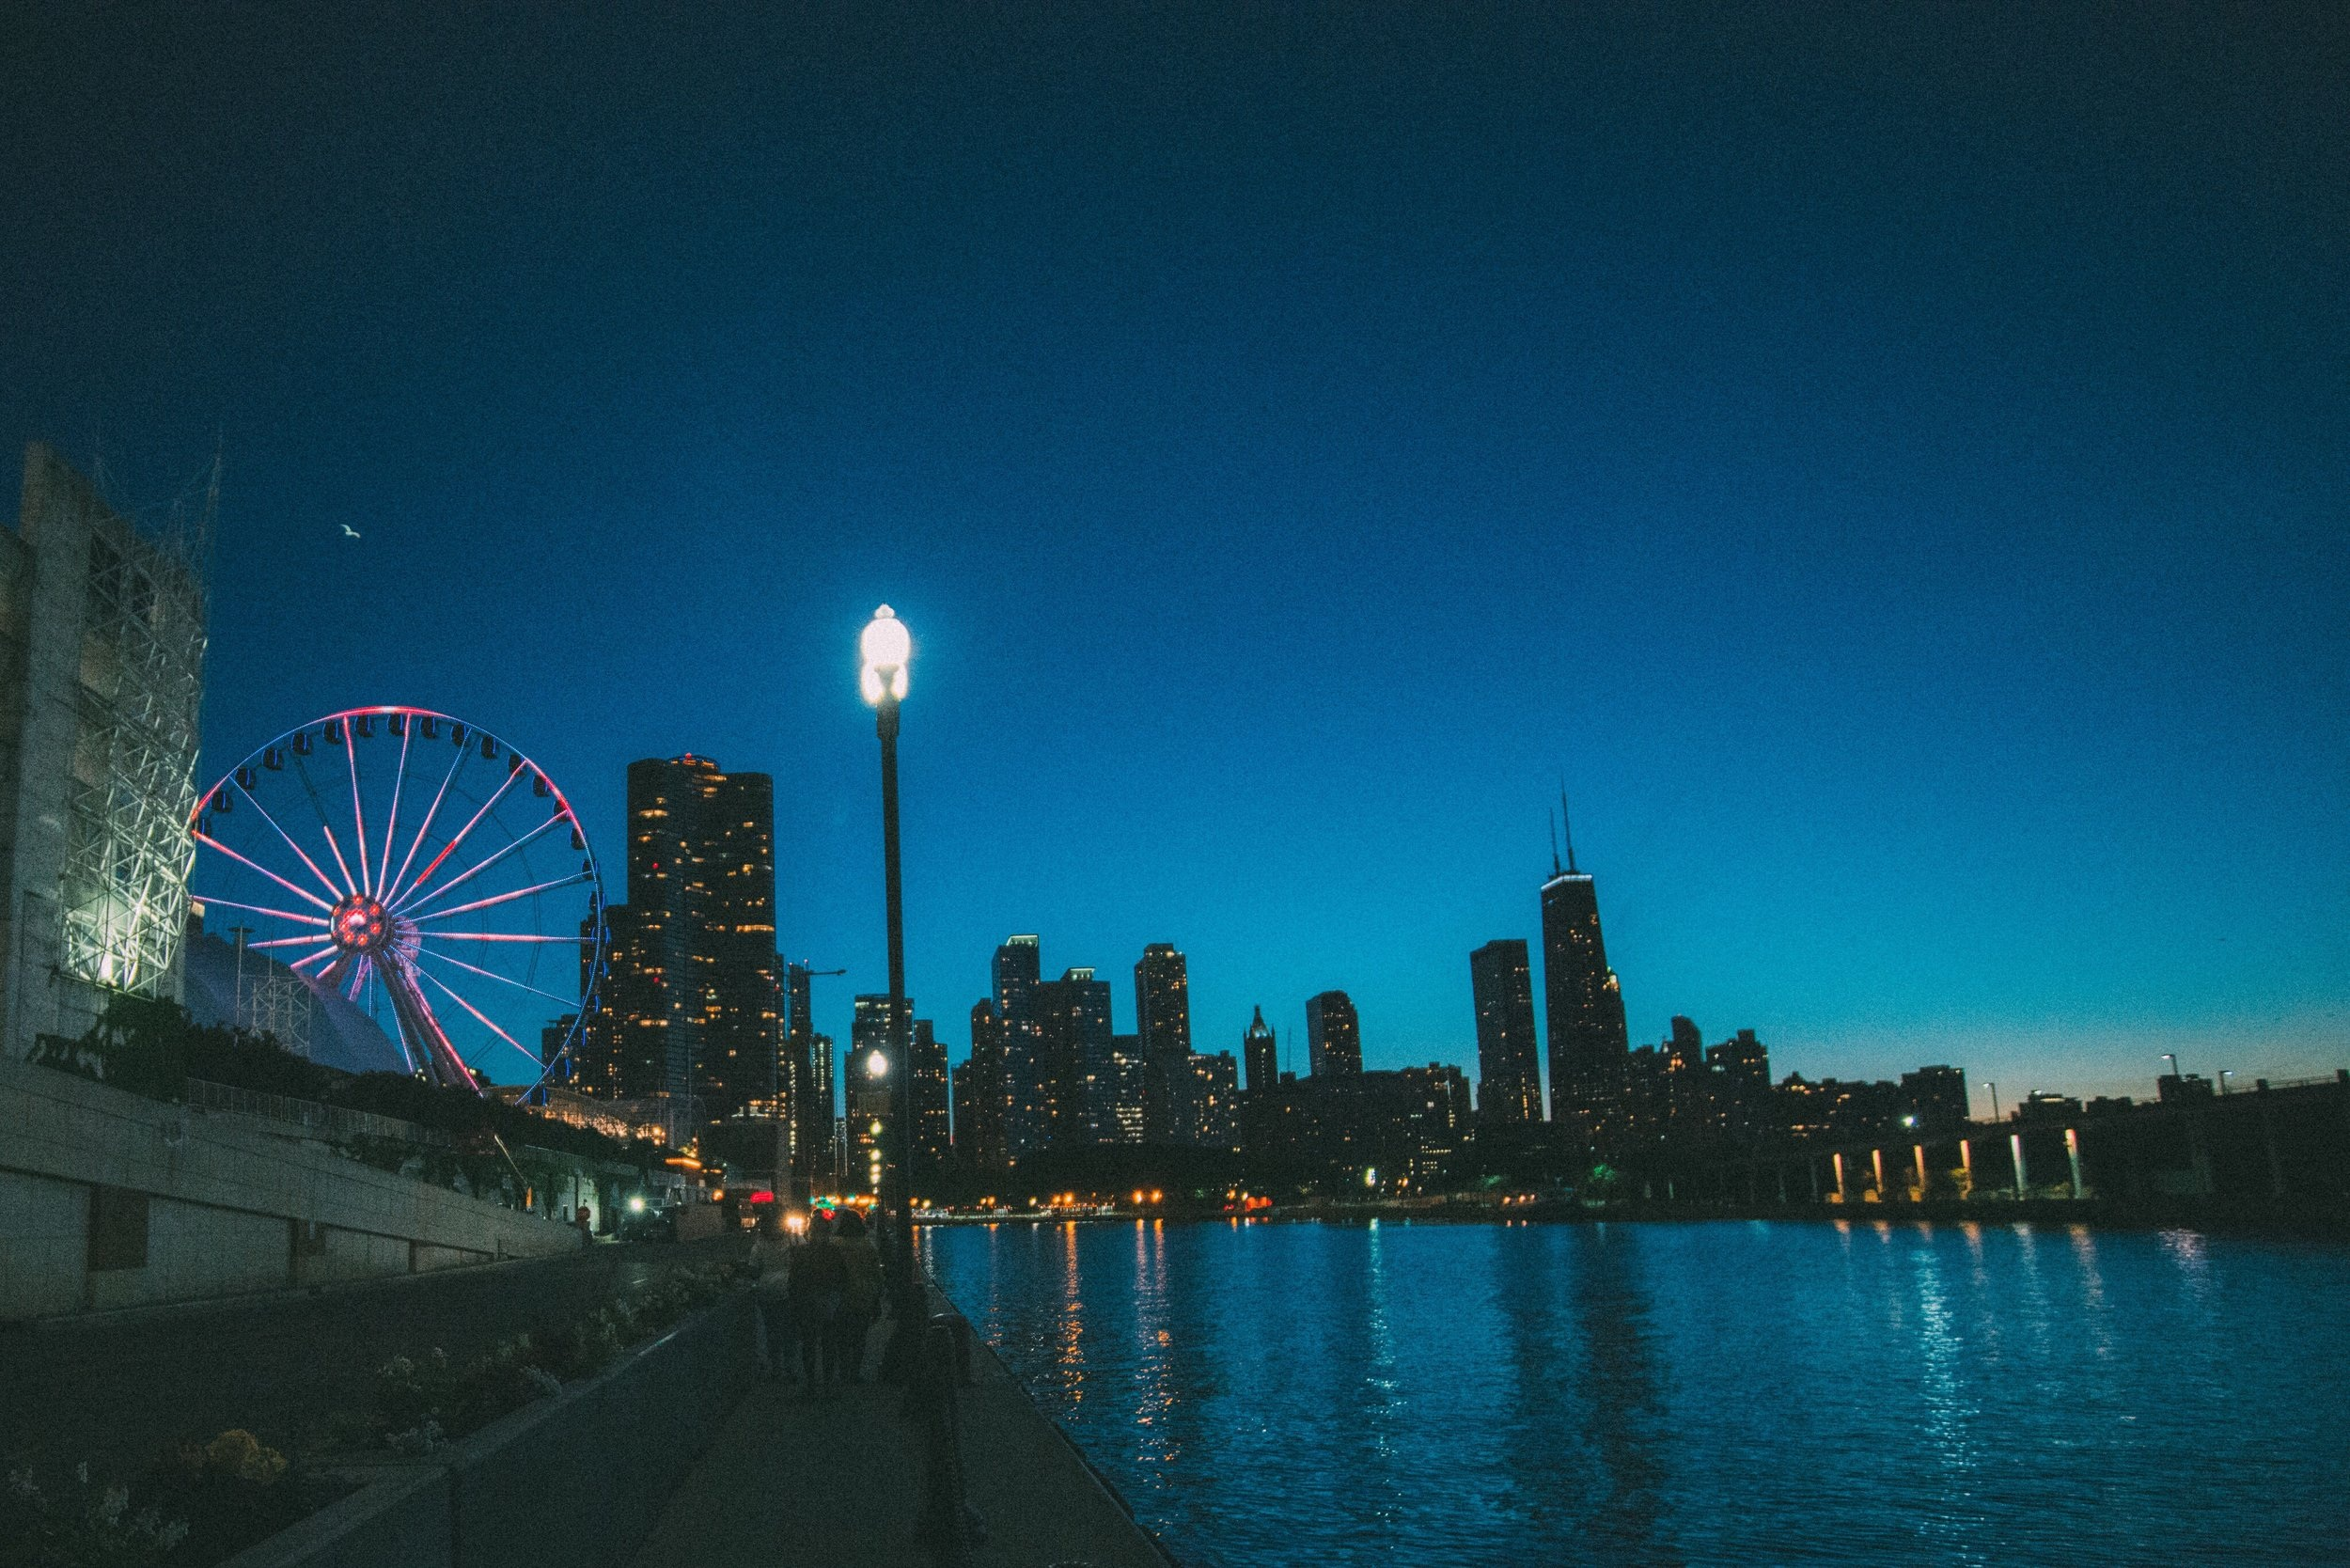 chicago-my-forever-home_t20_3woX2y.jpg